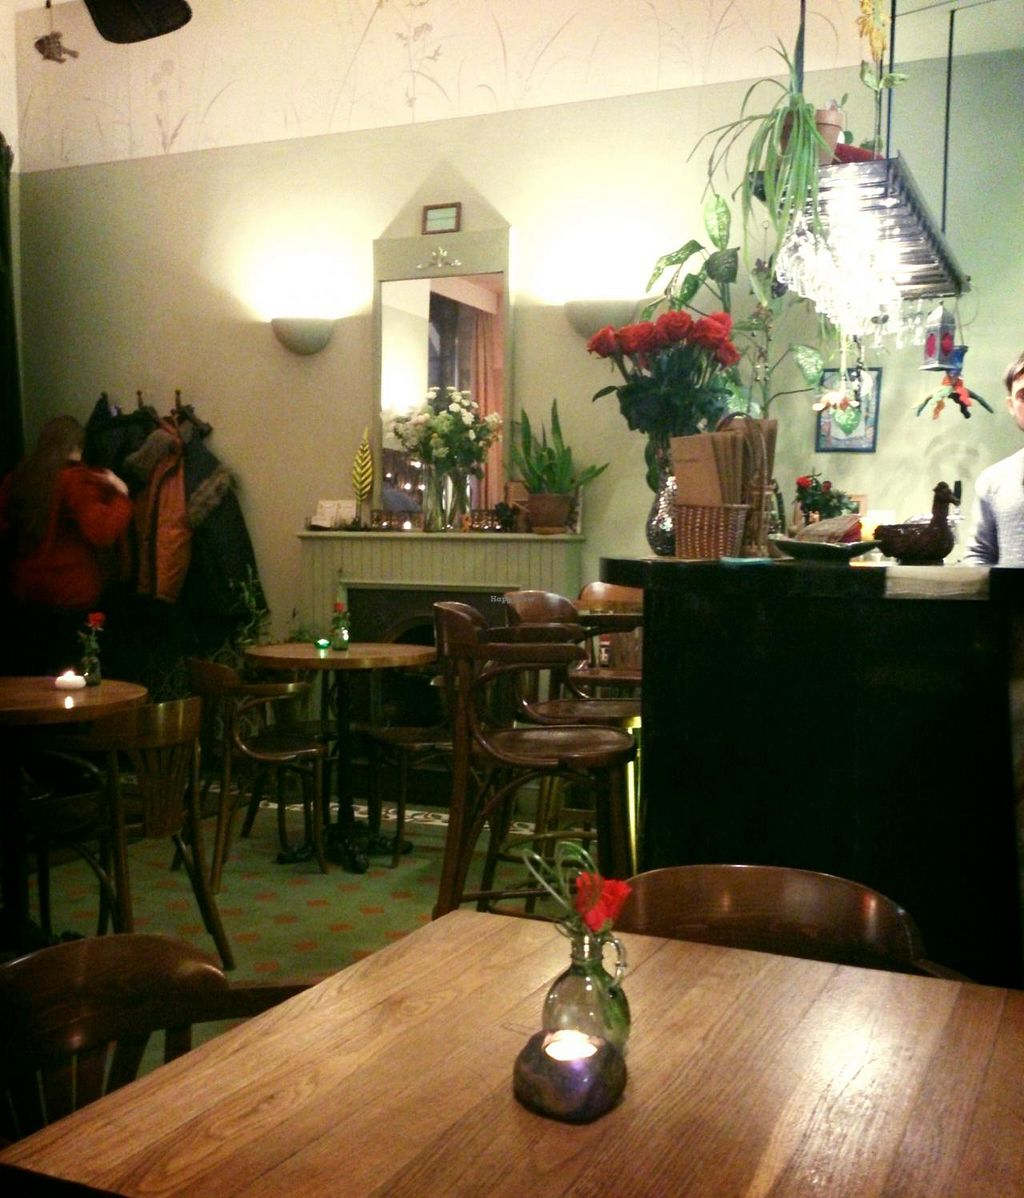 """Photo of Cafe Botanika  by <a href=""""/members/profile/emahelena"""">emahelena</a> <br/>Botanika in February 2014 <br/> May 12, 2014  - <a href='/contact/abuse/image/12603/69848'>Report</a>"""